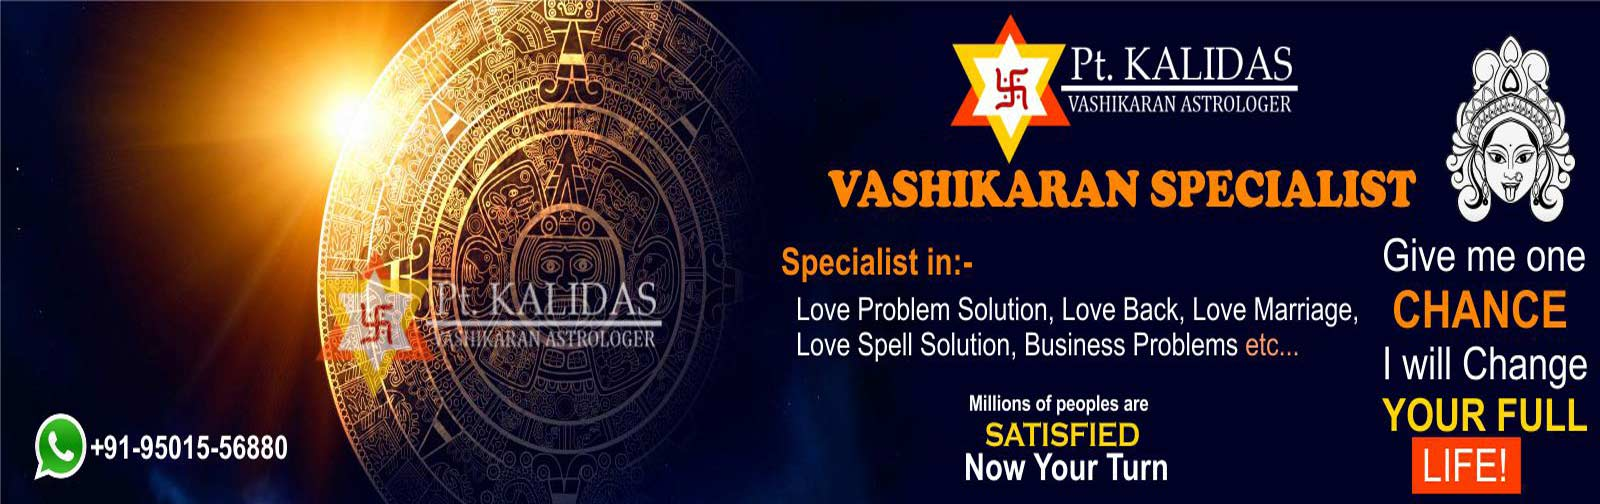 Love Problem Solution Specialist Astrologer in india +91-9501556880